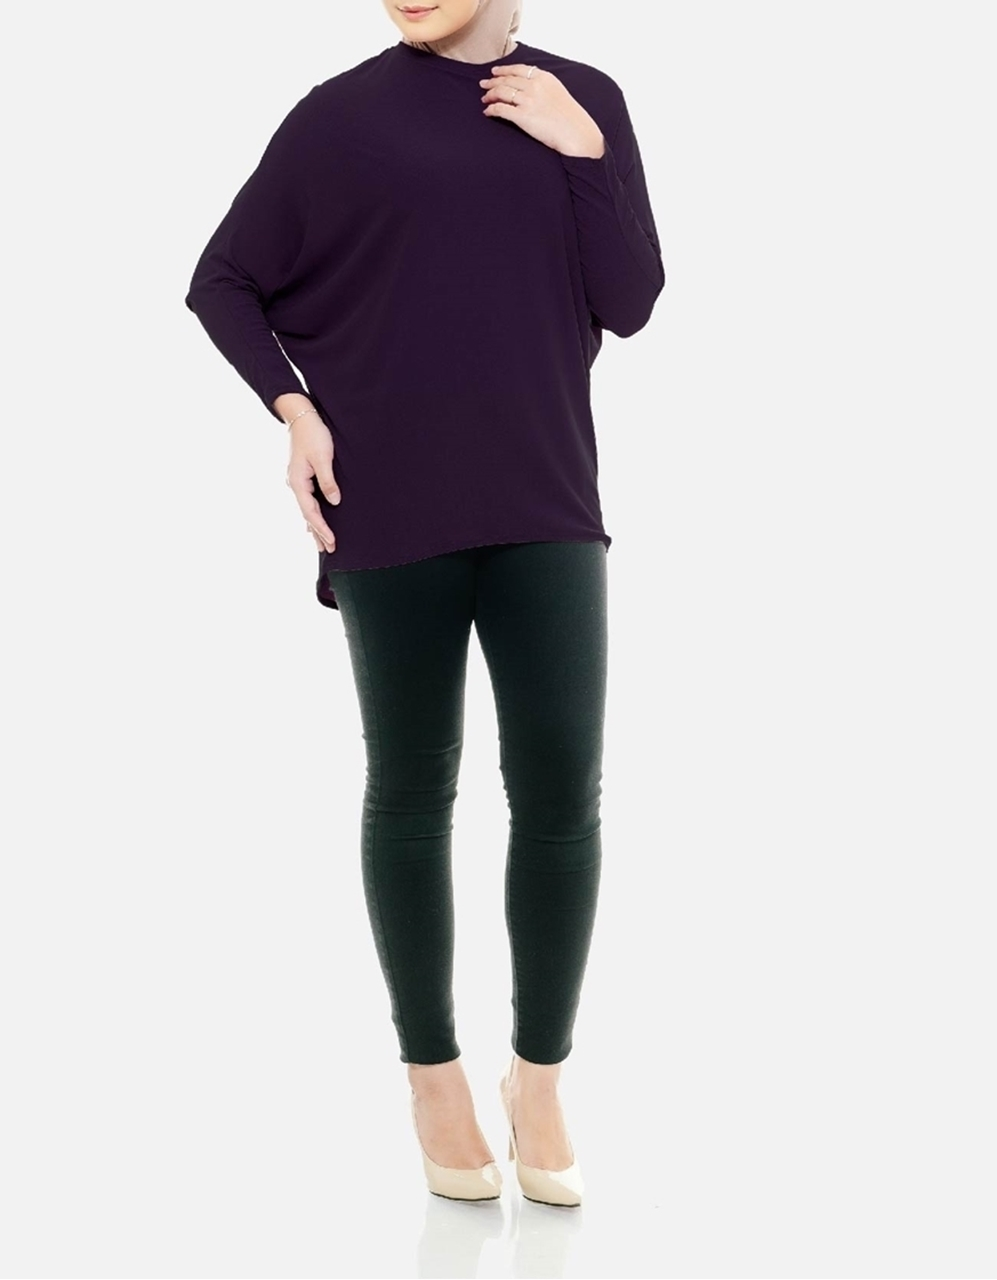 Picture of Sofea Batwing Blouse in Plum Purple